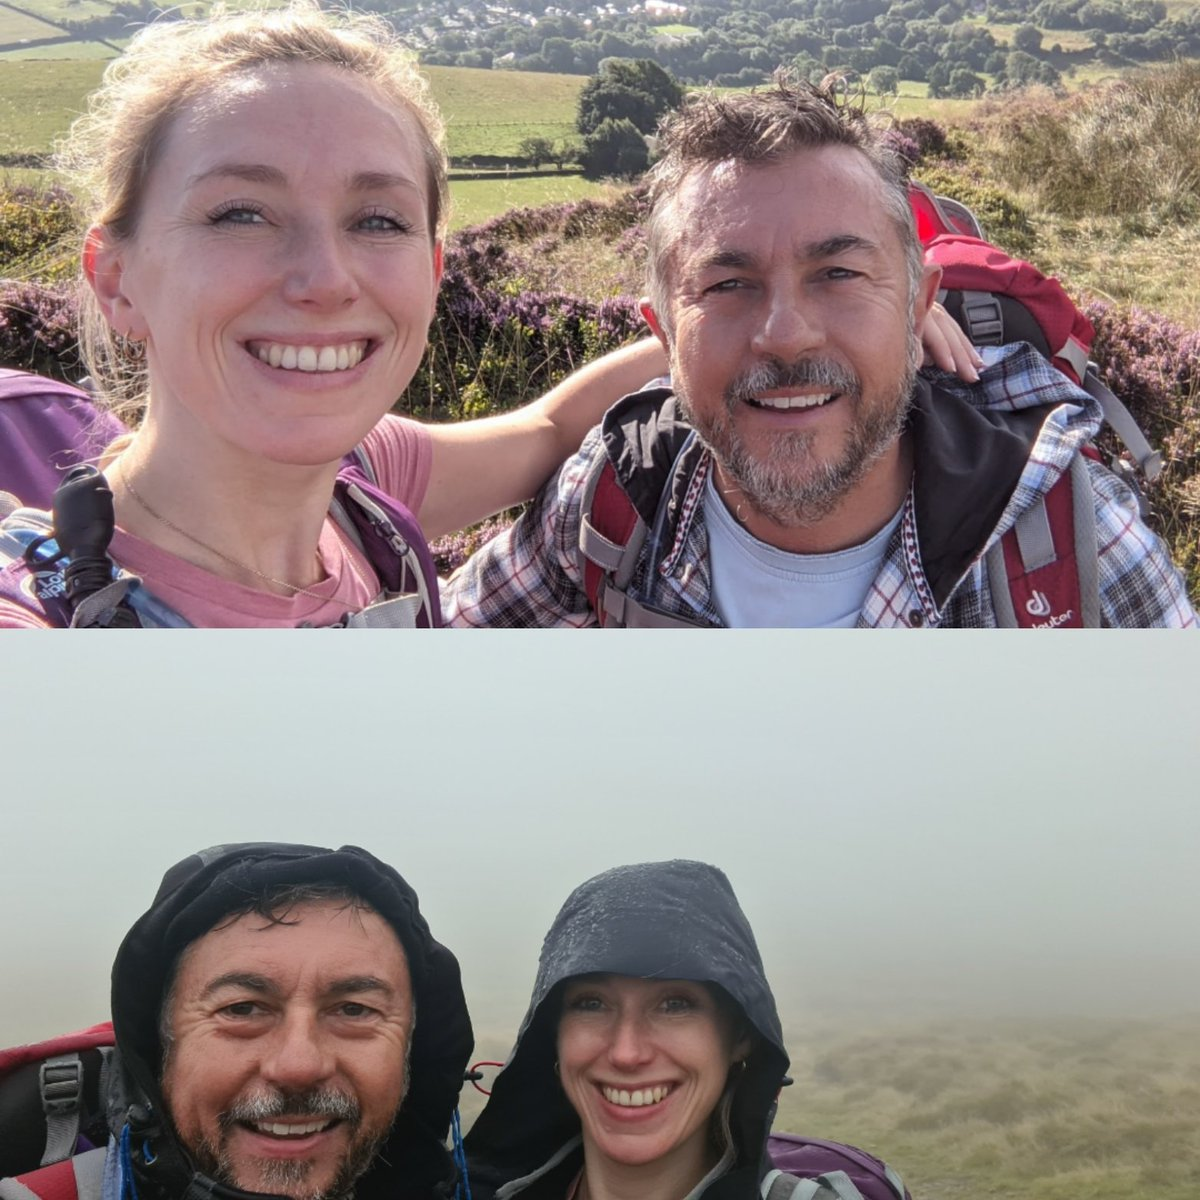 Typical Dark Peak Weather erm 'Changeable'. Up on Kinder for the day with my Amazing God Daughter #escapework #happydaysoff